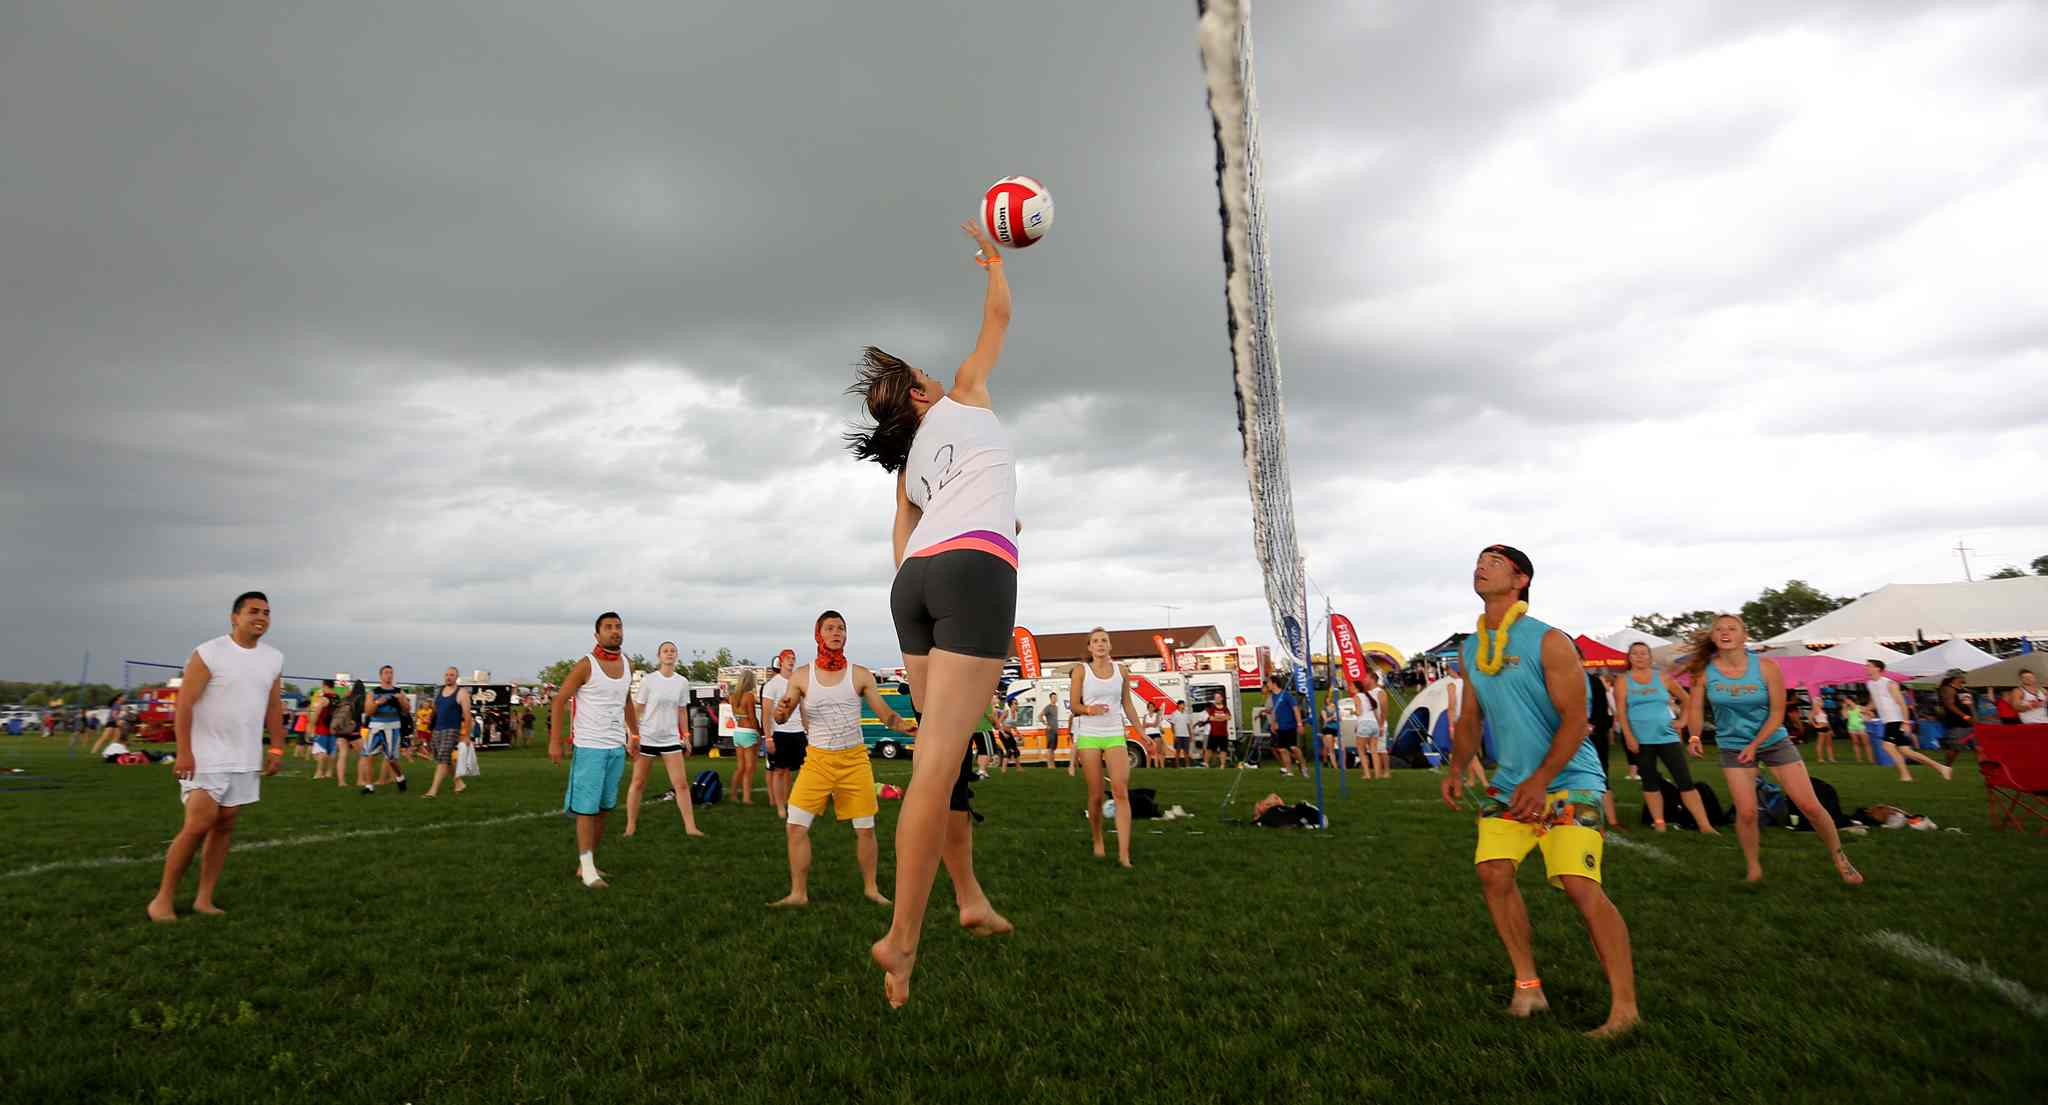 Kristin Robson of Interracial Sets hits the ball during her teams game against Dirty By Day, Electric By Night, at the Super-Spike volleyball tournament at Maple Grove Rugby Park, Friday, July 18, 2014.